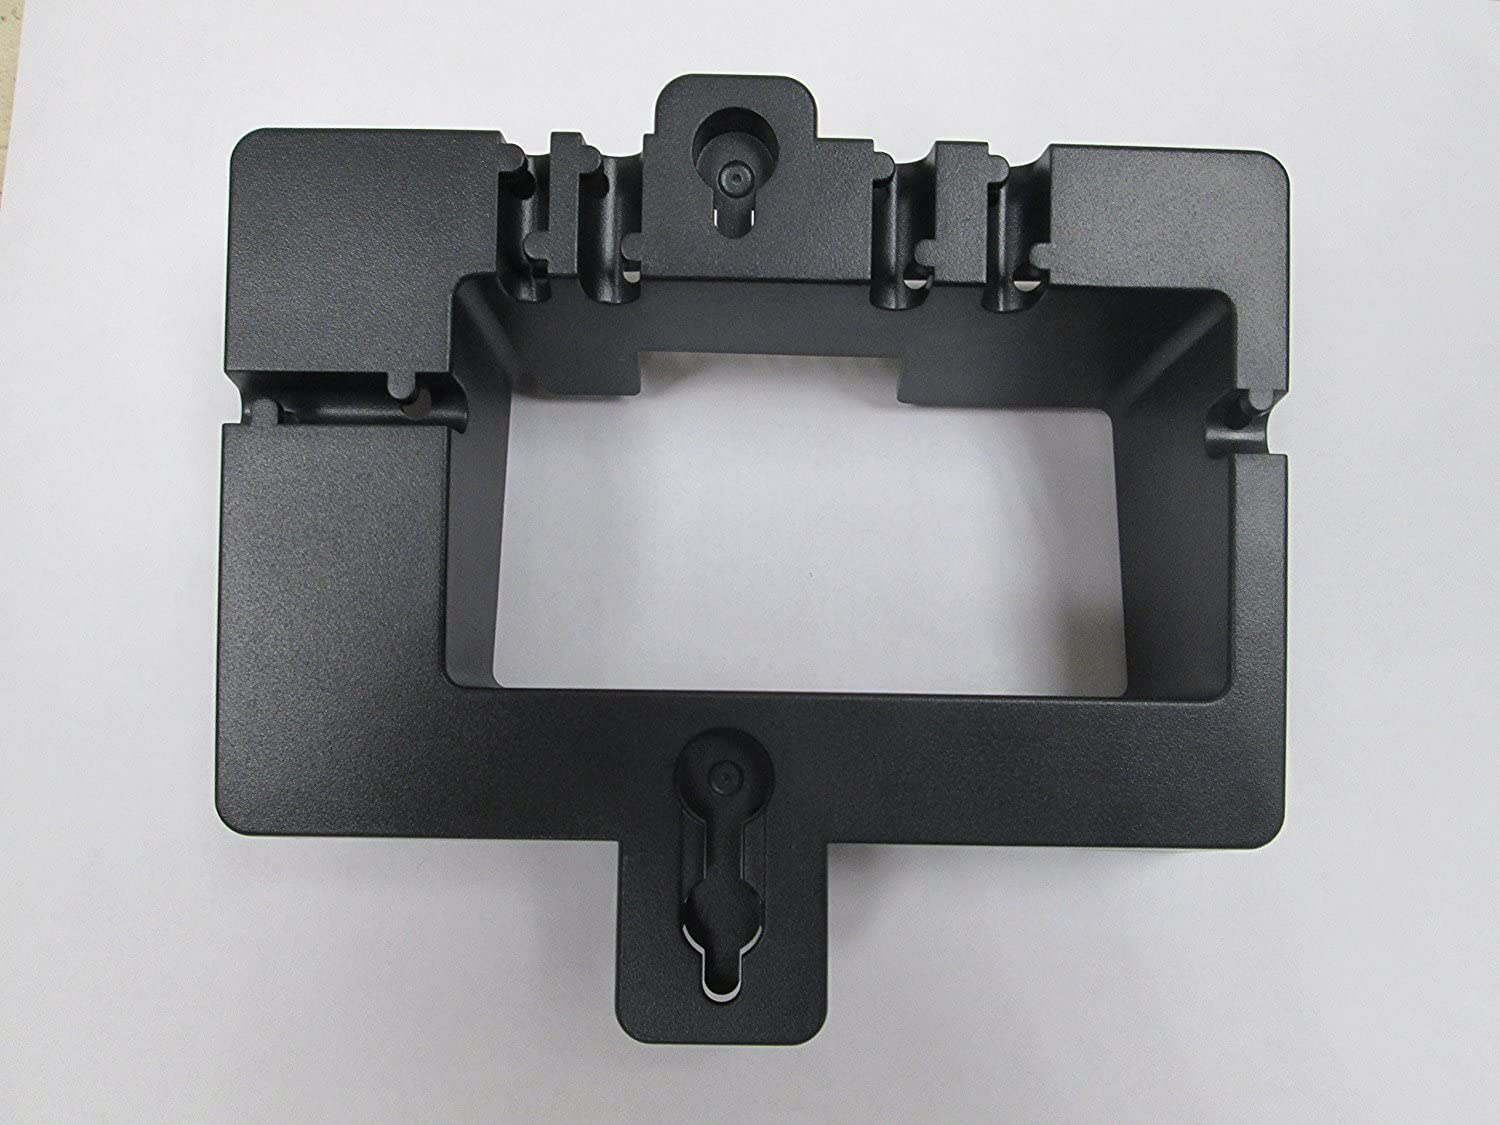 New Yealink Wall Mount Bracket for T40P//T41P//T42G WMB-T4S YEA-WMB-T4S